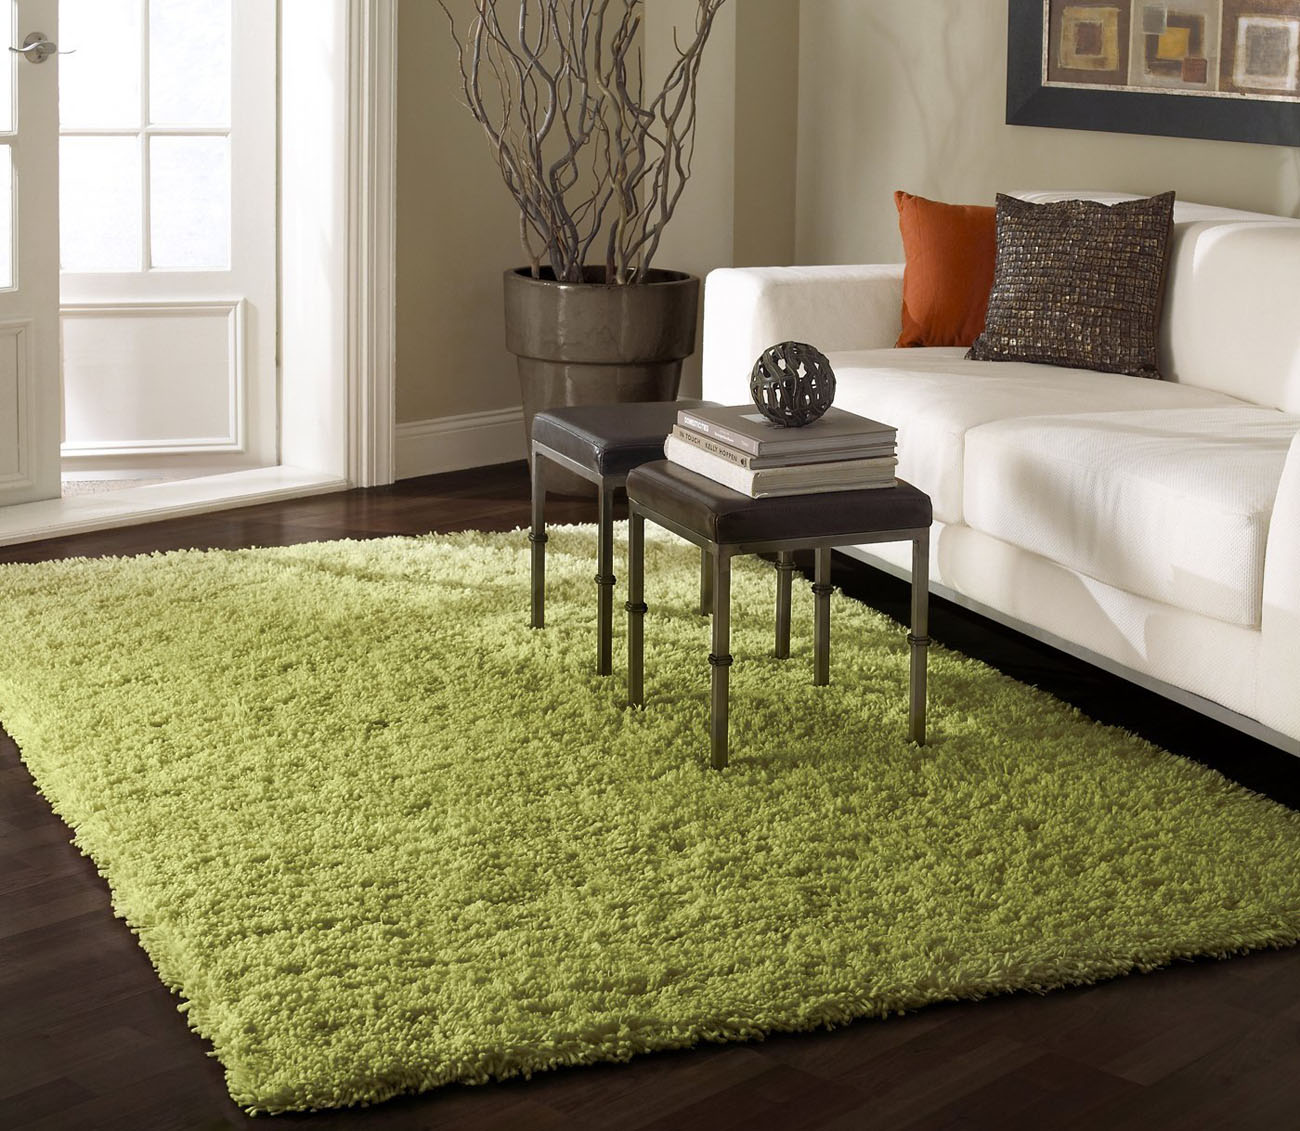 Create Cozy Room Ambience With Area Rugs Idesignarch Interior Design Architecture